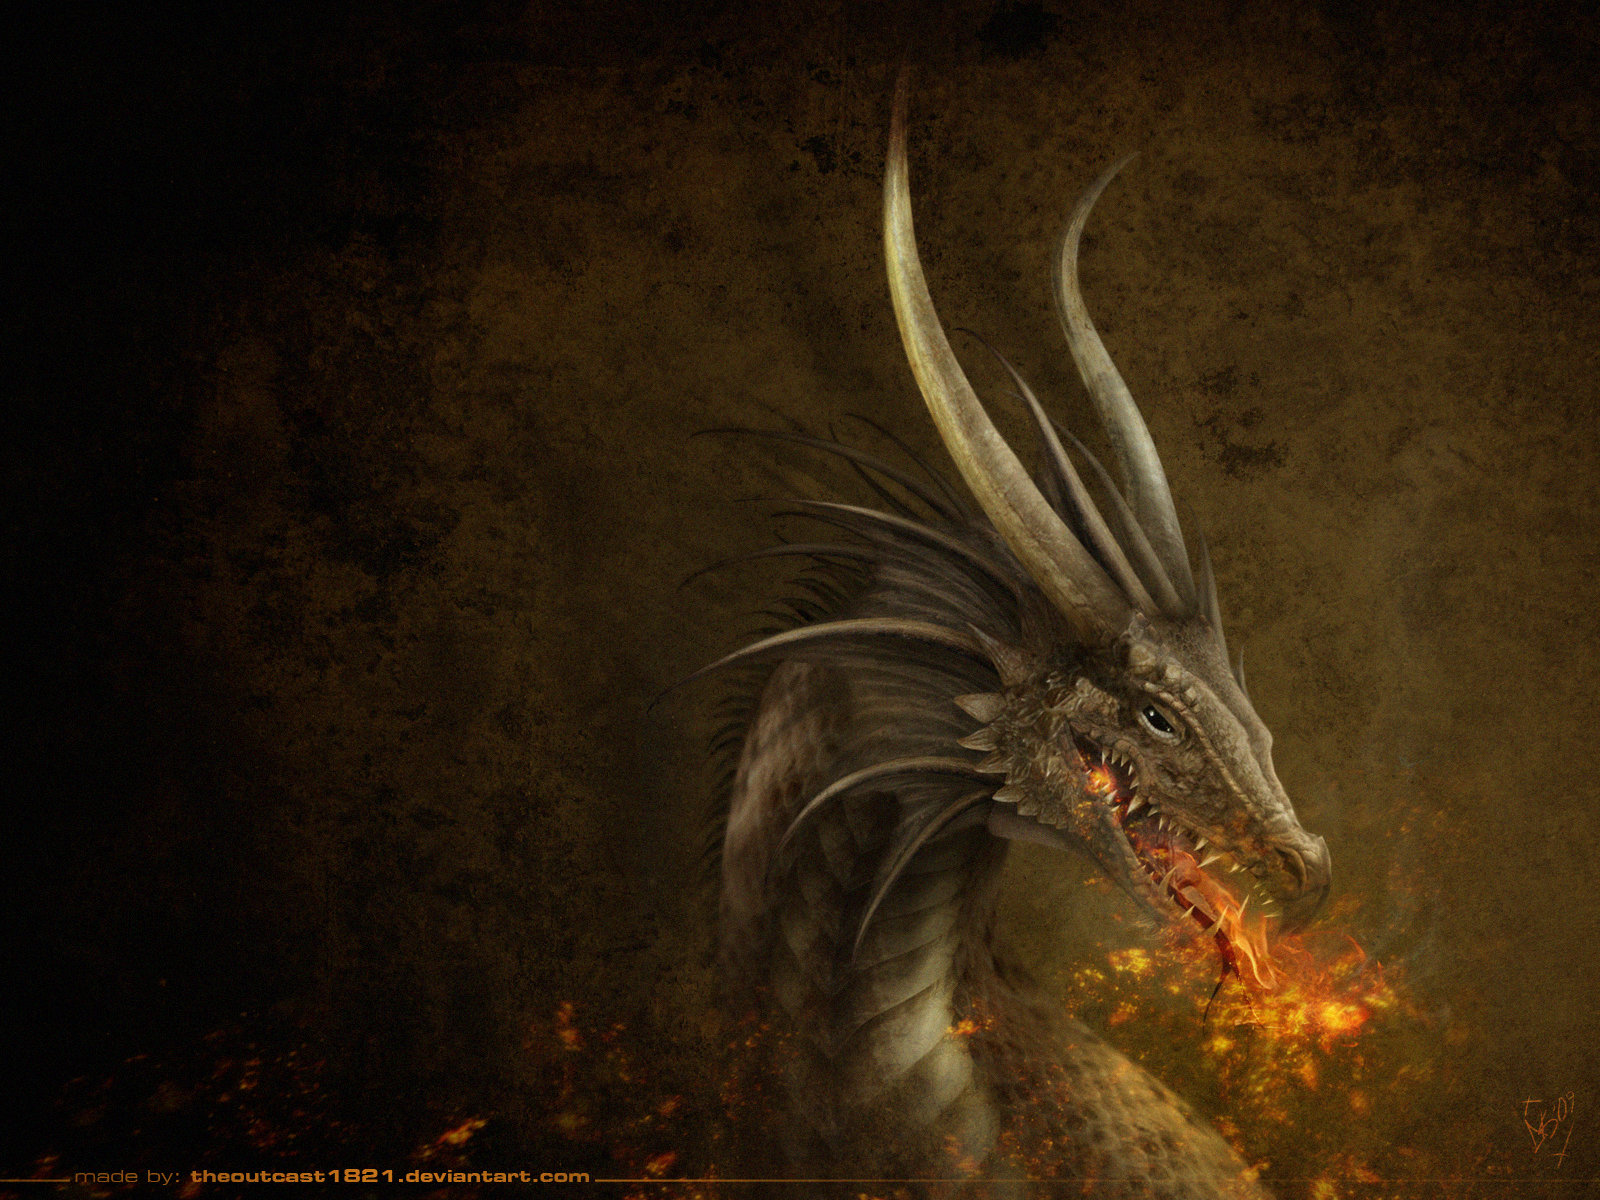 The Dragon wallpaper by TheOutcast1821 on DeviantArt